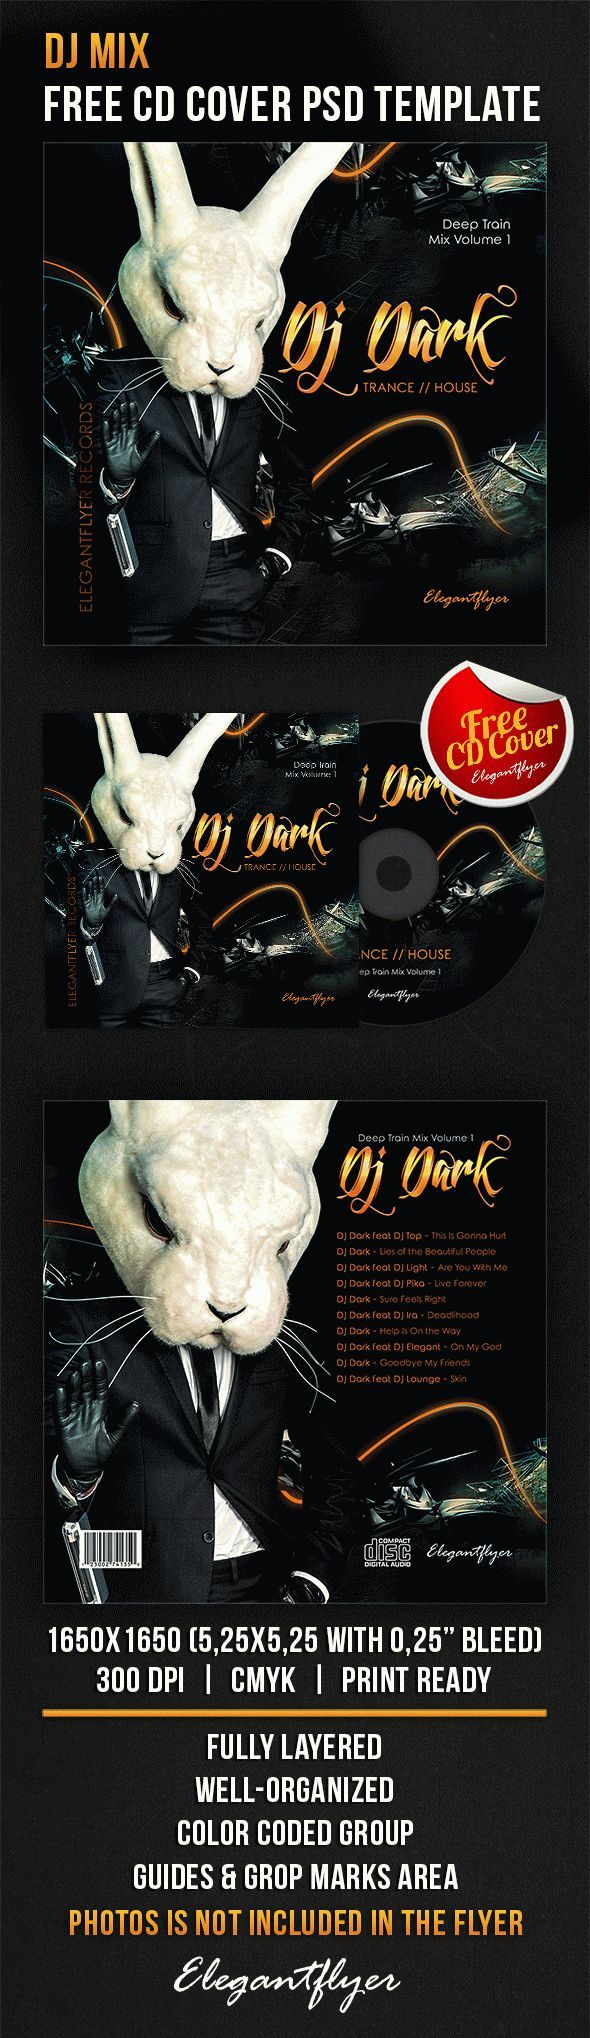 DJ Mix – Free CD Cover PSD Template